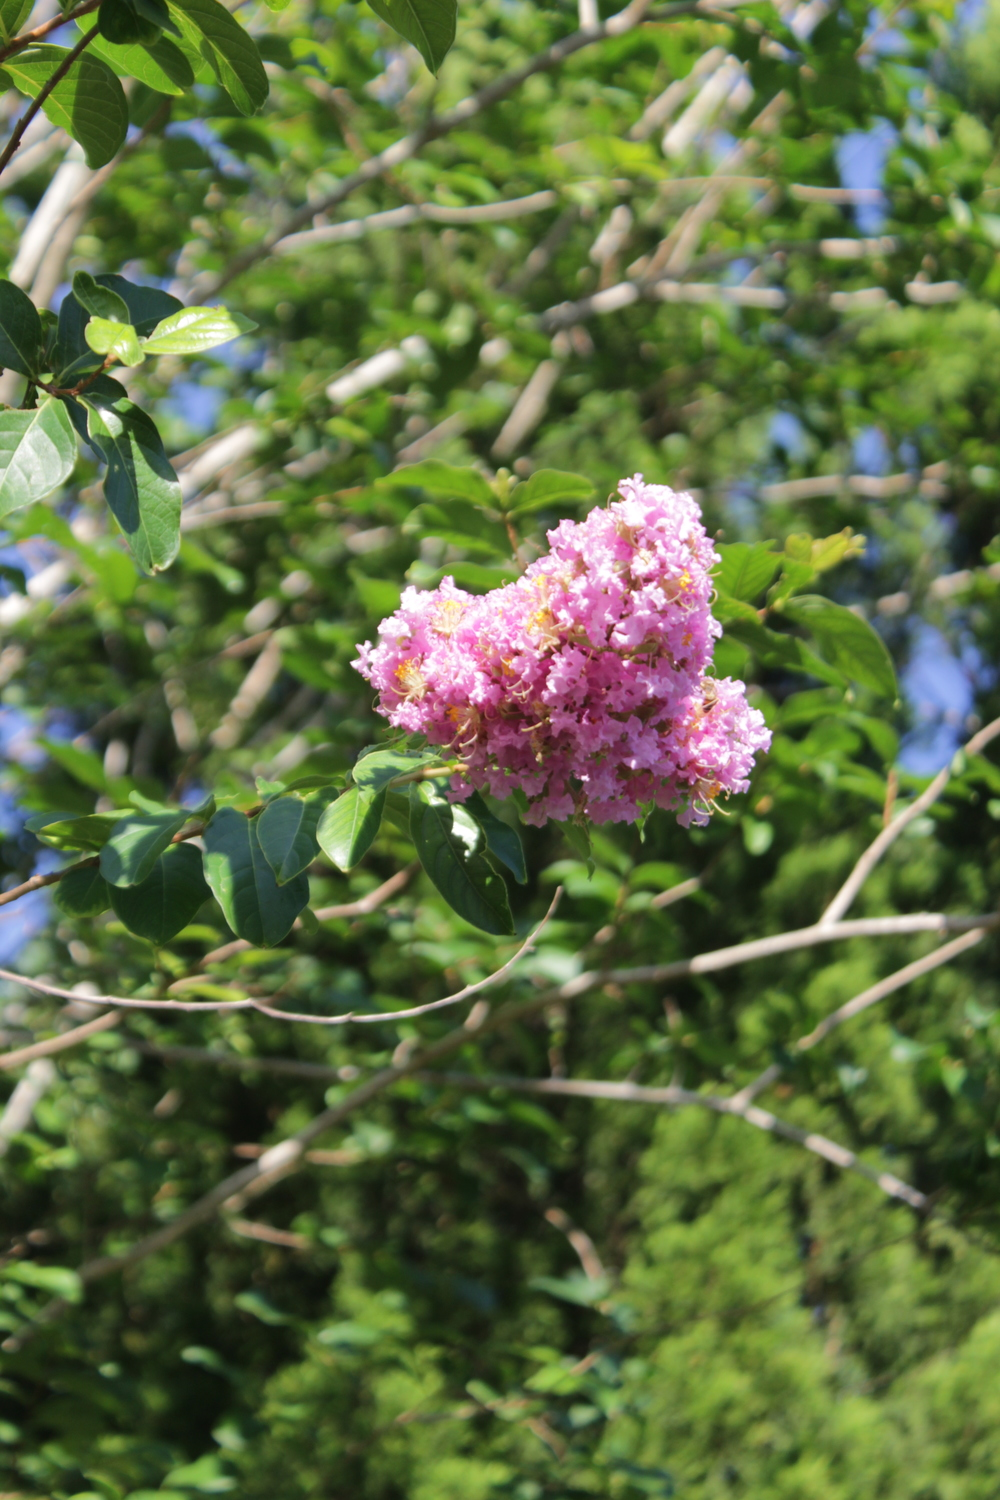 Crepe Myrtles are beginning to bloom.